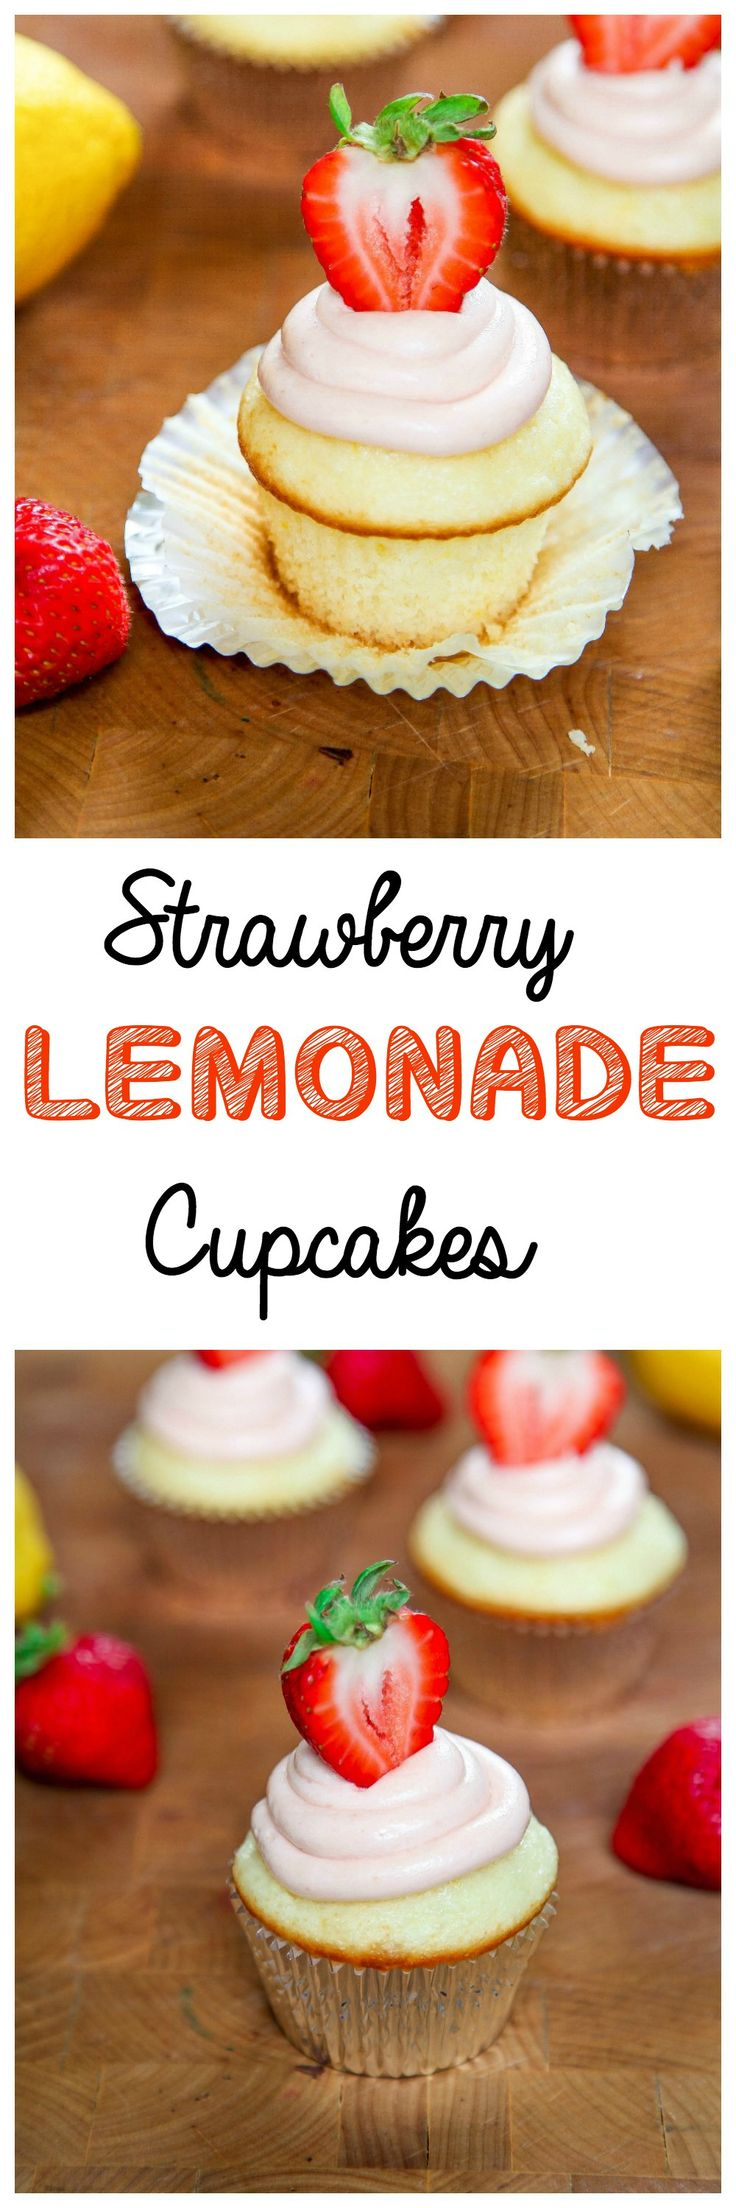 Strawberry Lemonade Cupcakes: Tangy lemon cupcakes topped with a creamy strawberry buttercream. Your favorite summer drink, in cupcake form!